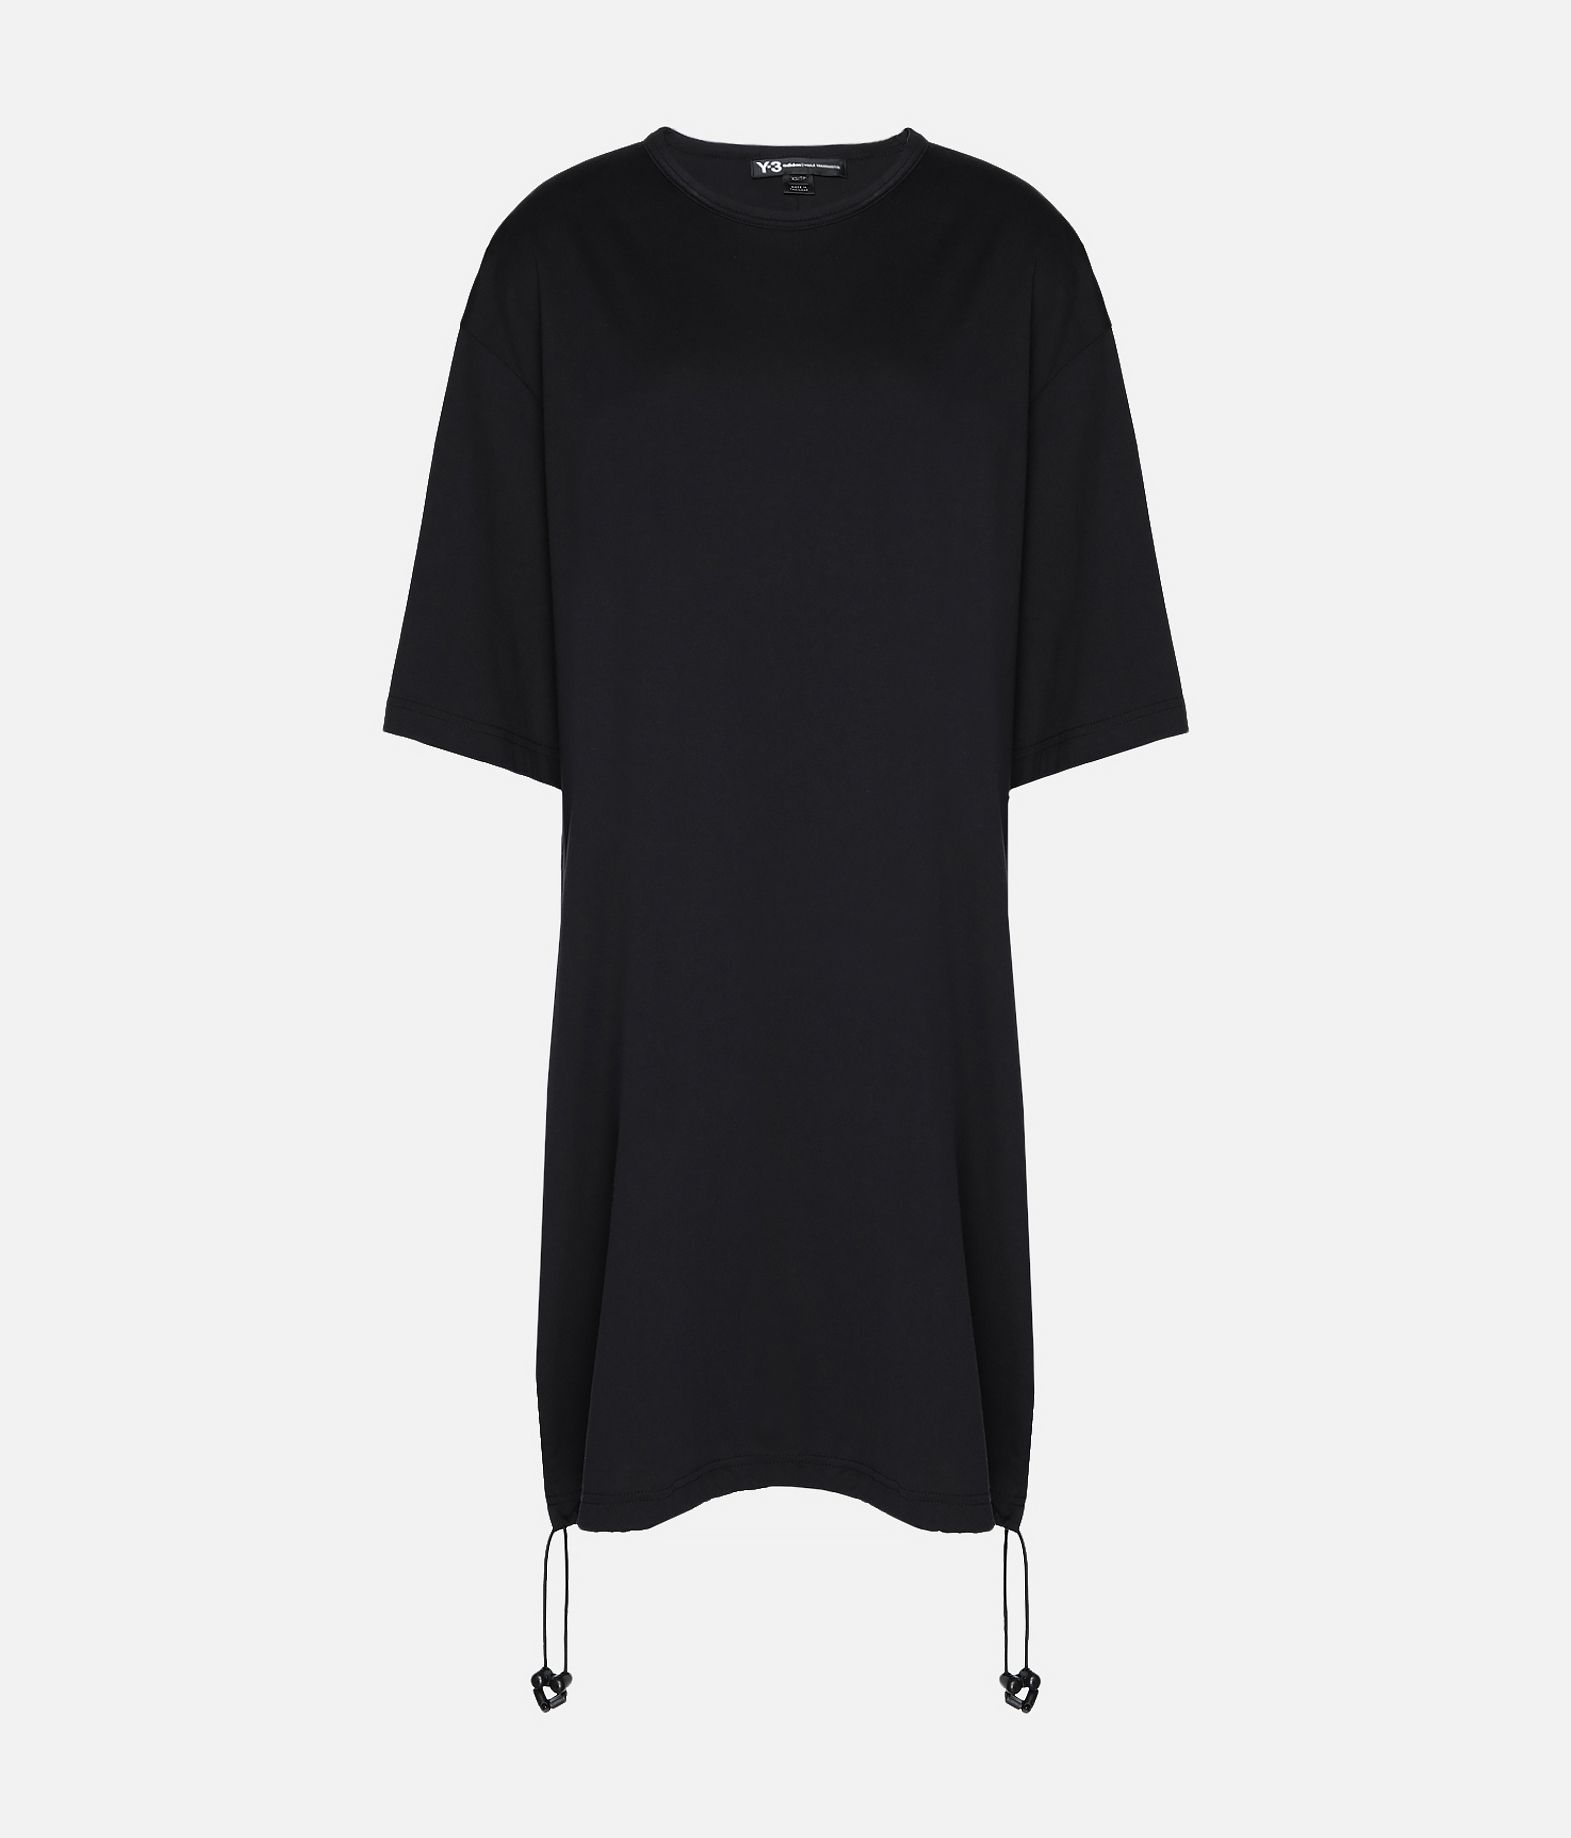 Y-3 Y-3 Drawstring Long Tee Short sleeve t-shirt Woman f